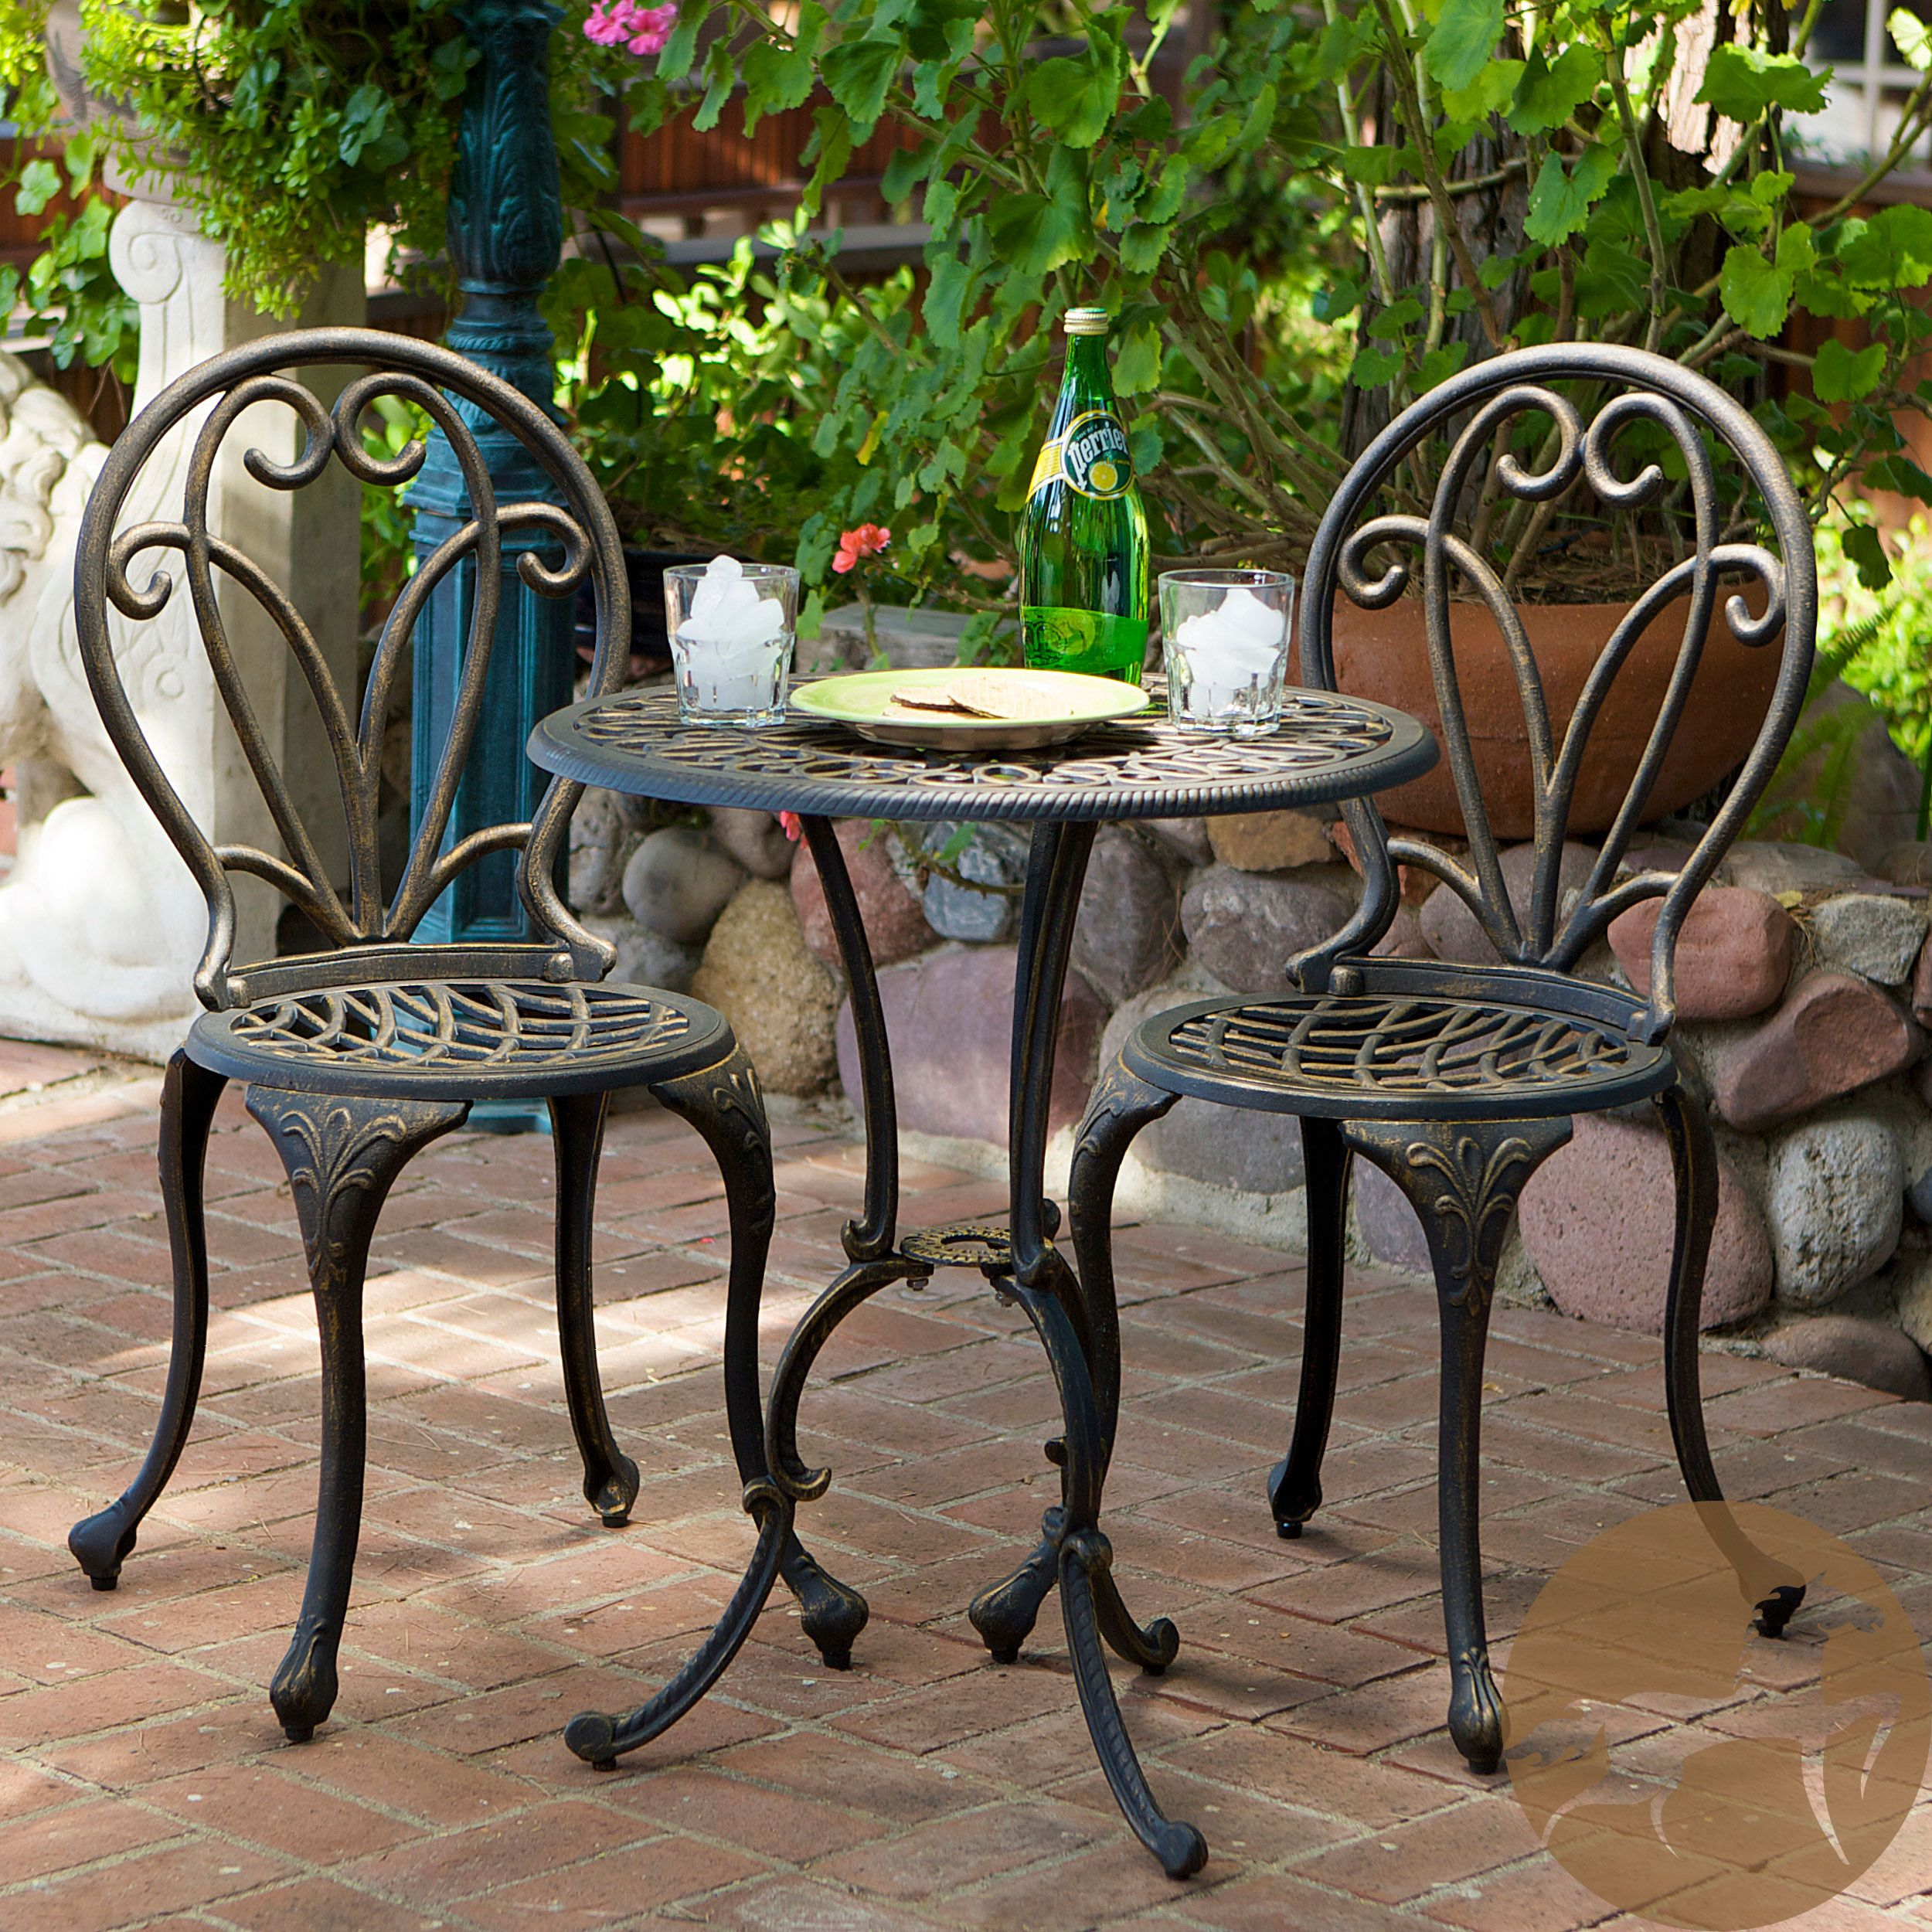 Vintage cafe table and chairs - This French Style Outdoor Bistro Set Will Lend Classy Style To Your Patio The